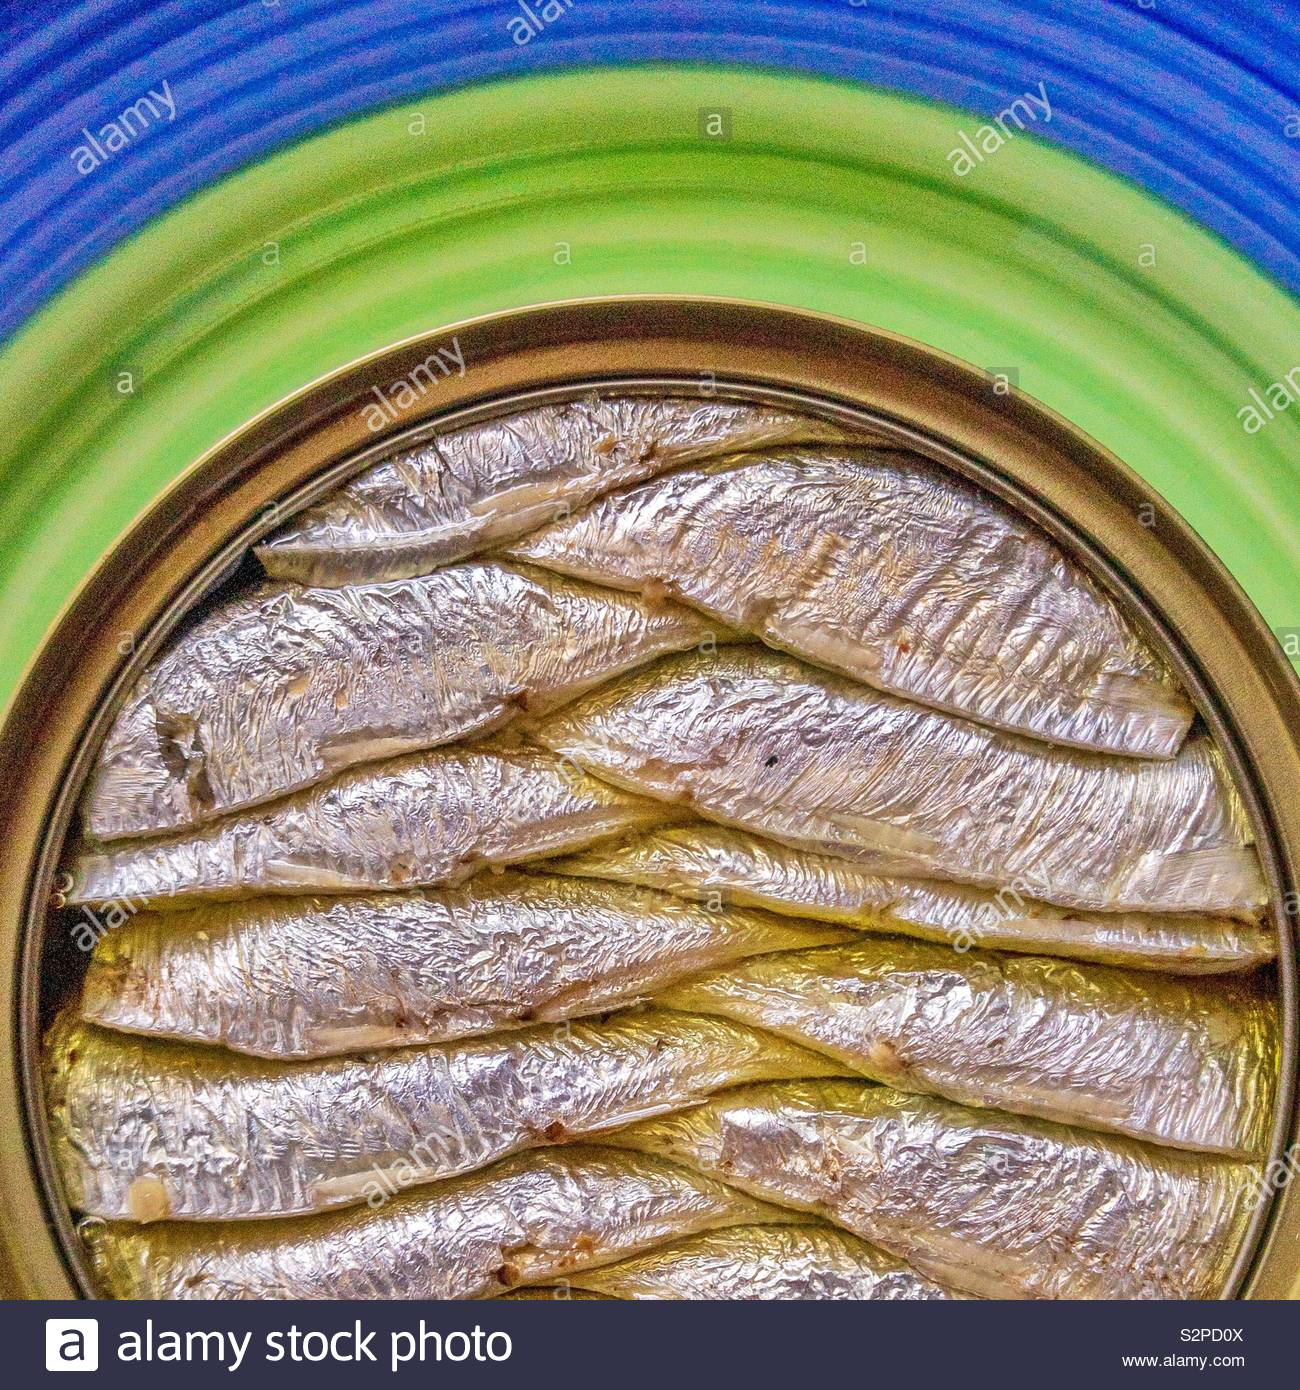 Brisling packed in a can. Also known as the European sprat, bristling, garvie, skipper, whitebait or Russian sardine. - Stock Image